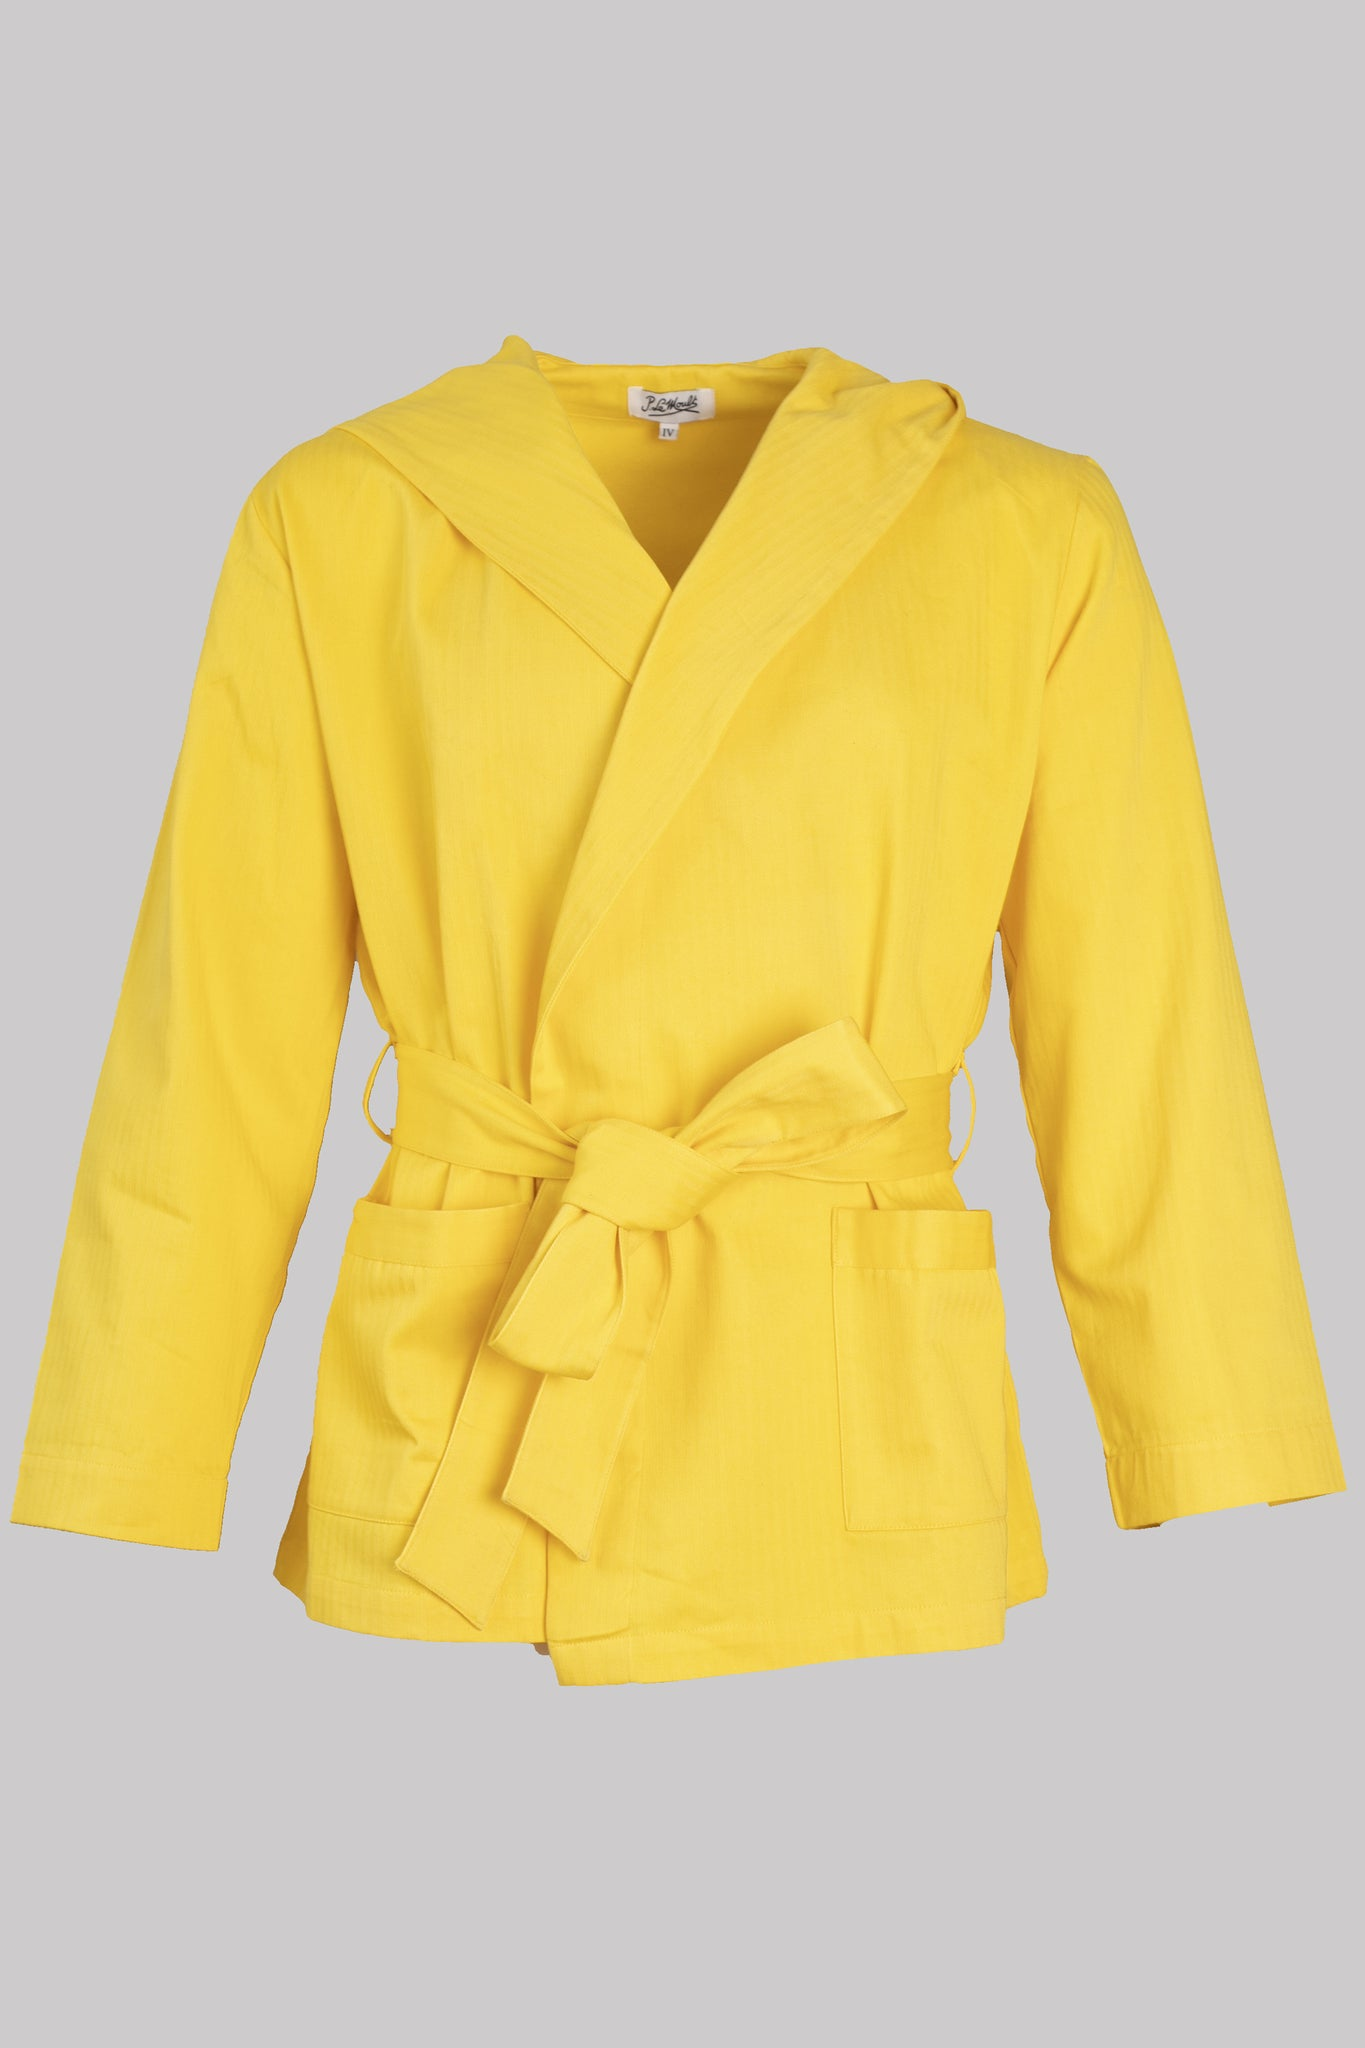 8716 HOODY-JACKET Colour       100%ᴾᵁᴿᴱ COTTON Herringbone-THICK       YELLOW       Bretagne 1934 beach resort